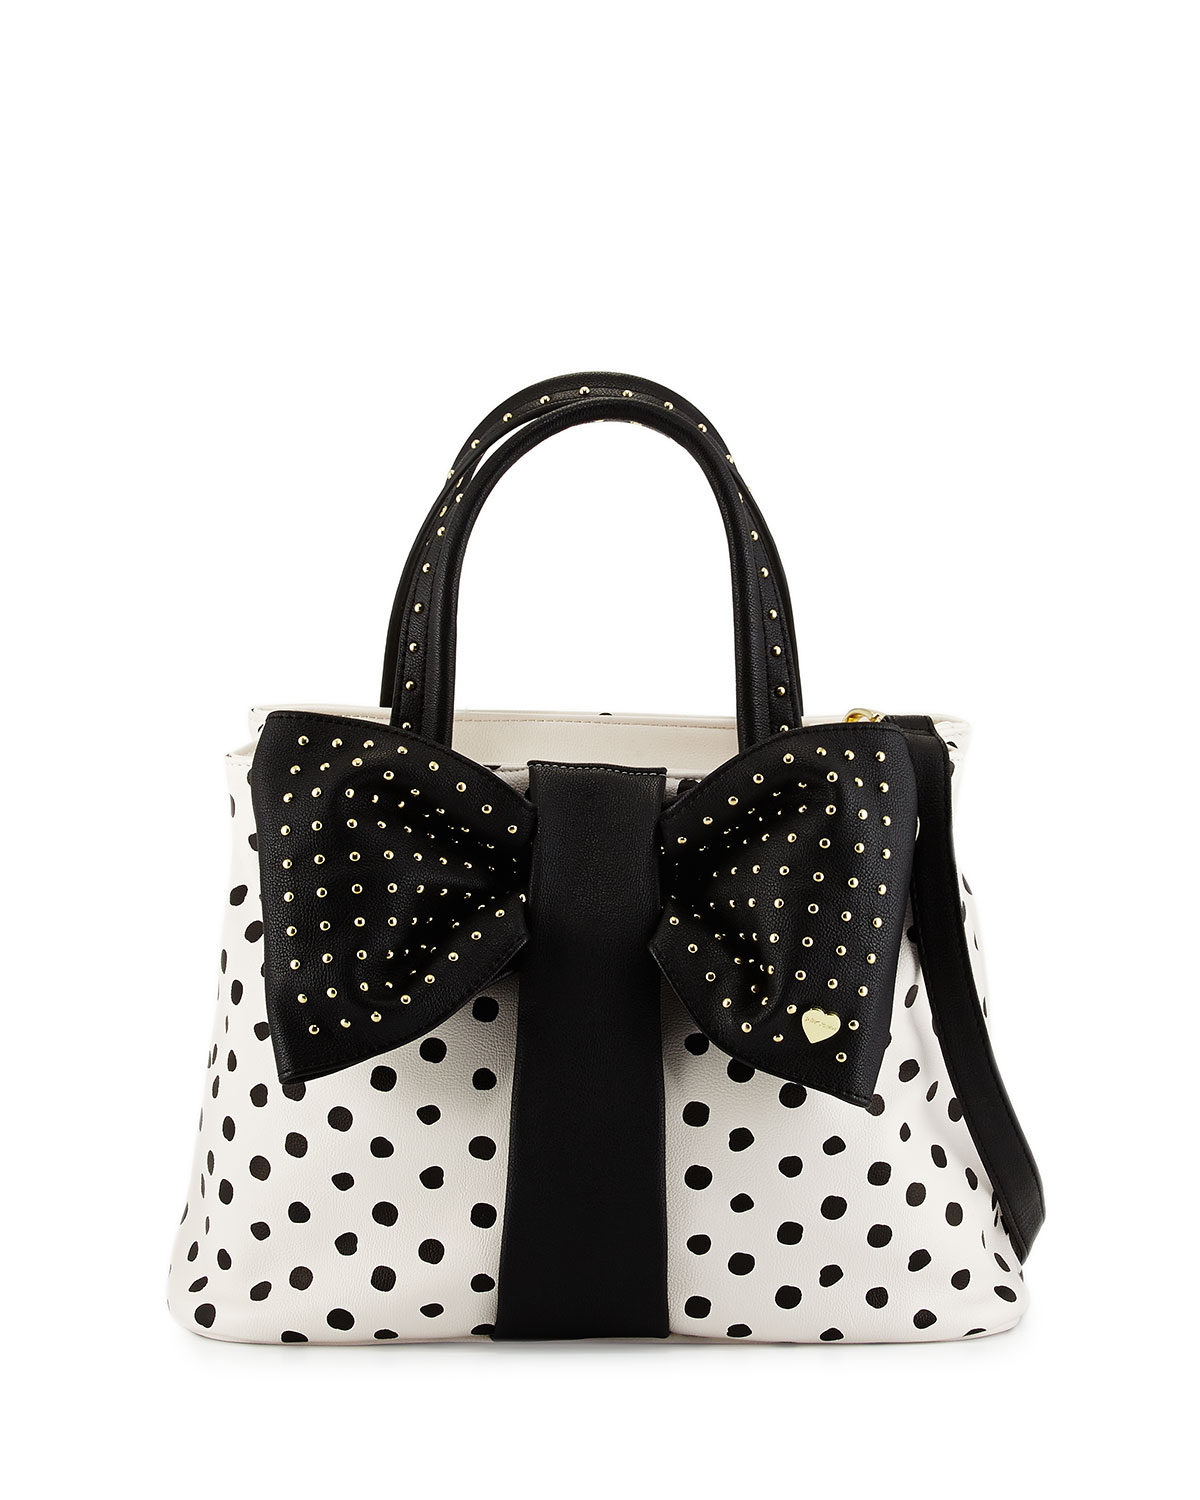 NEW with Tags Betsey Johnson Large Tote Shoulder Bag